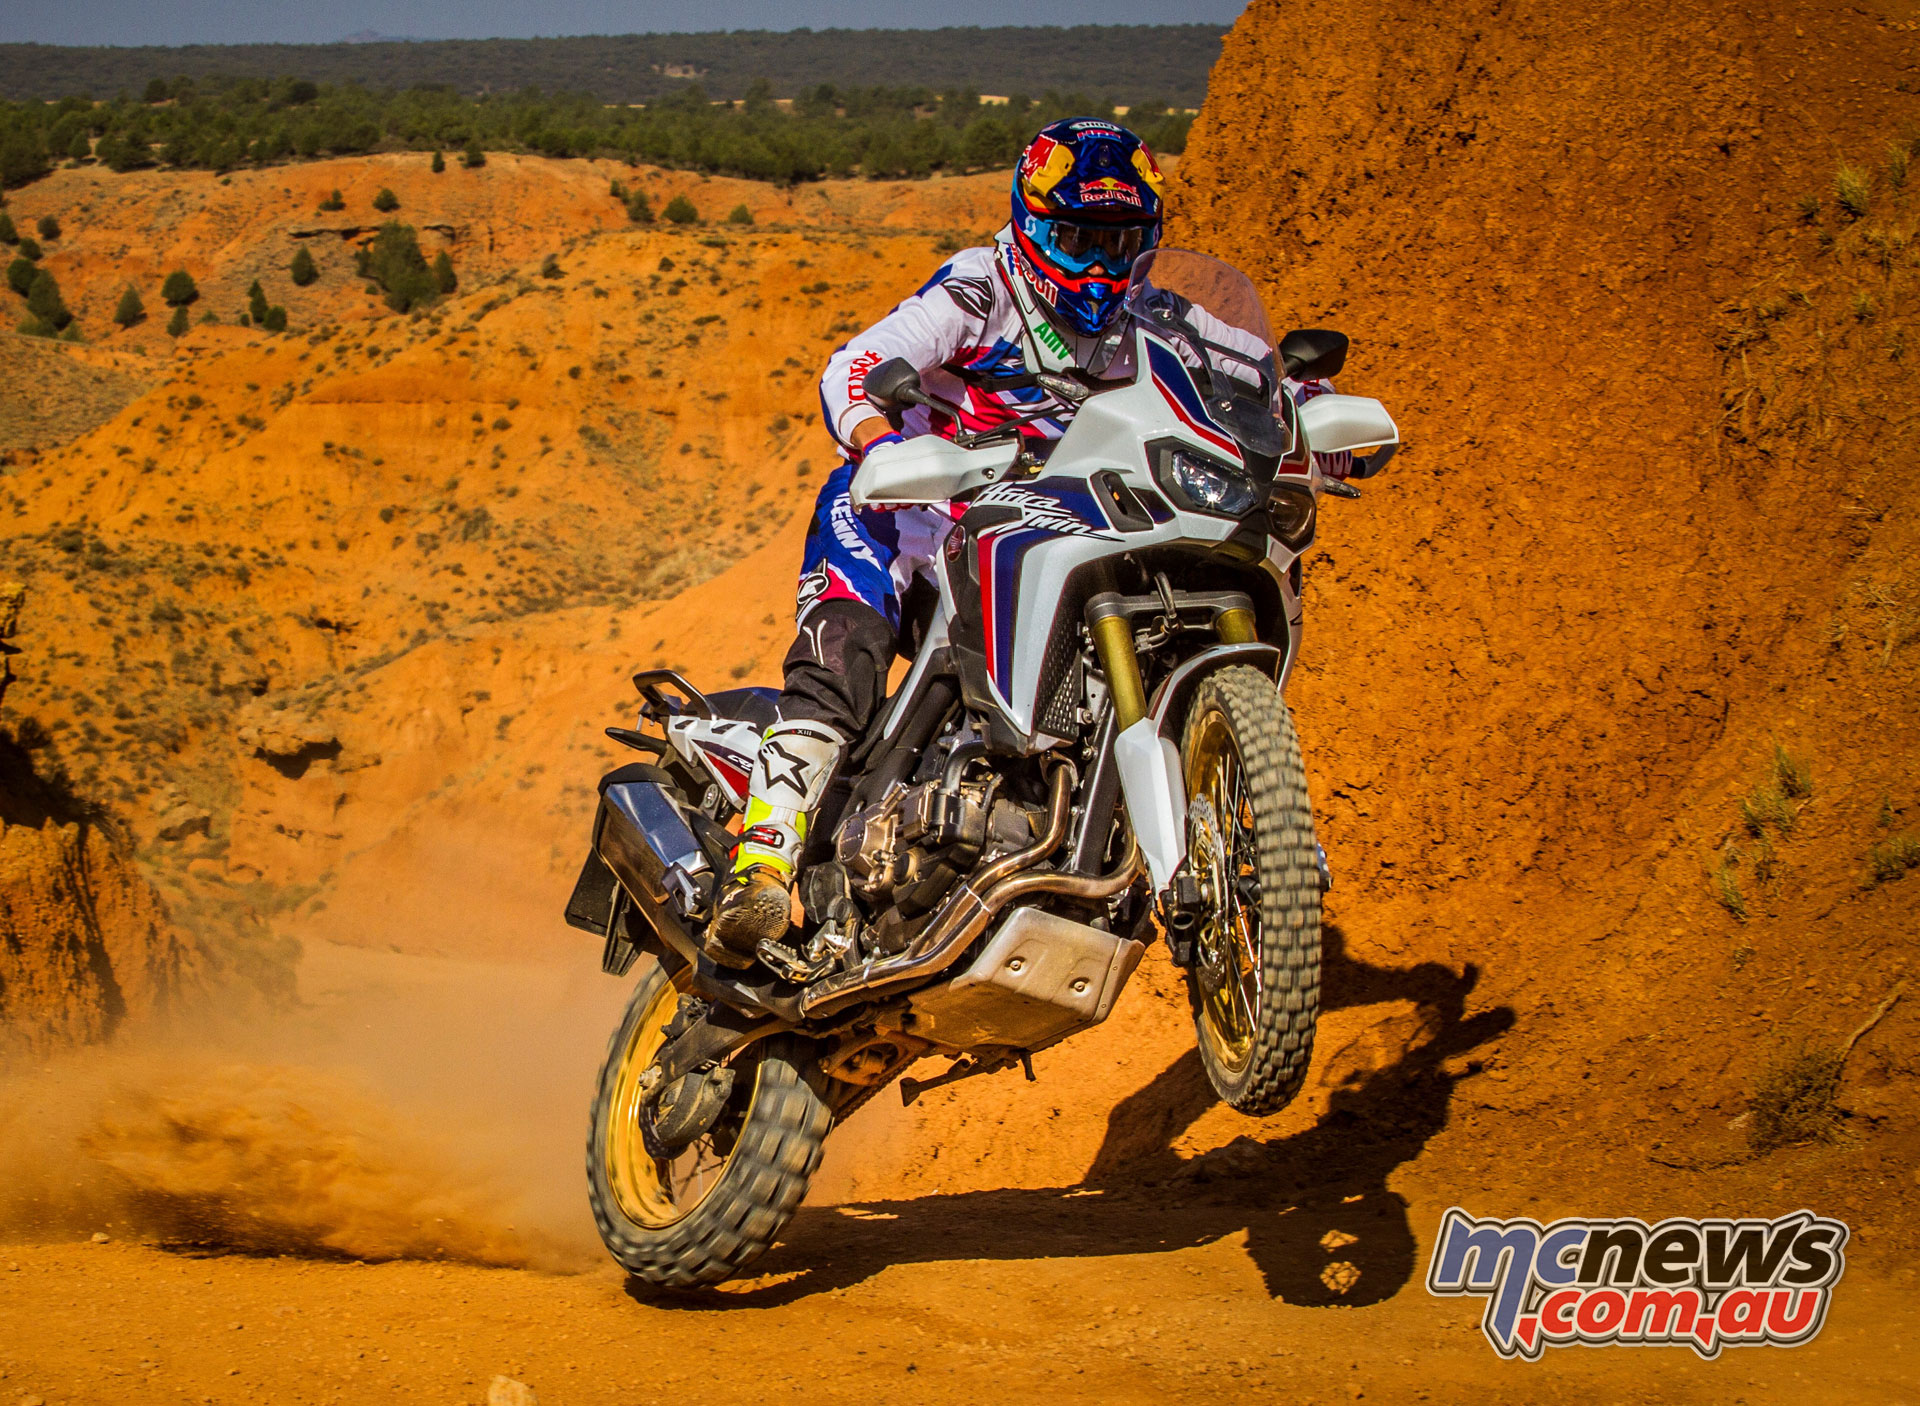 Honda Africa Twin - ridden by Joan Barreda